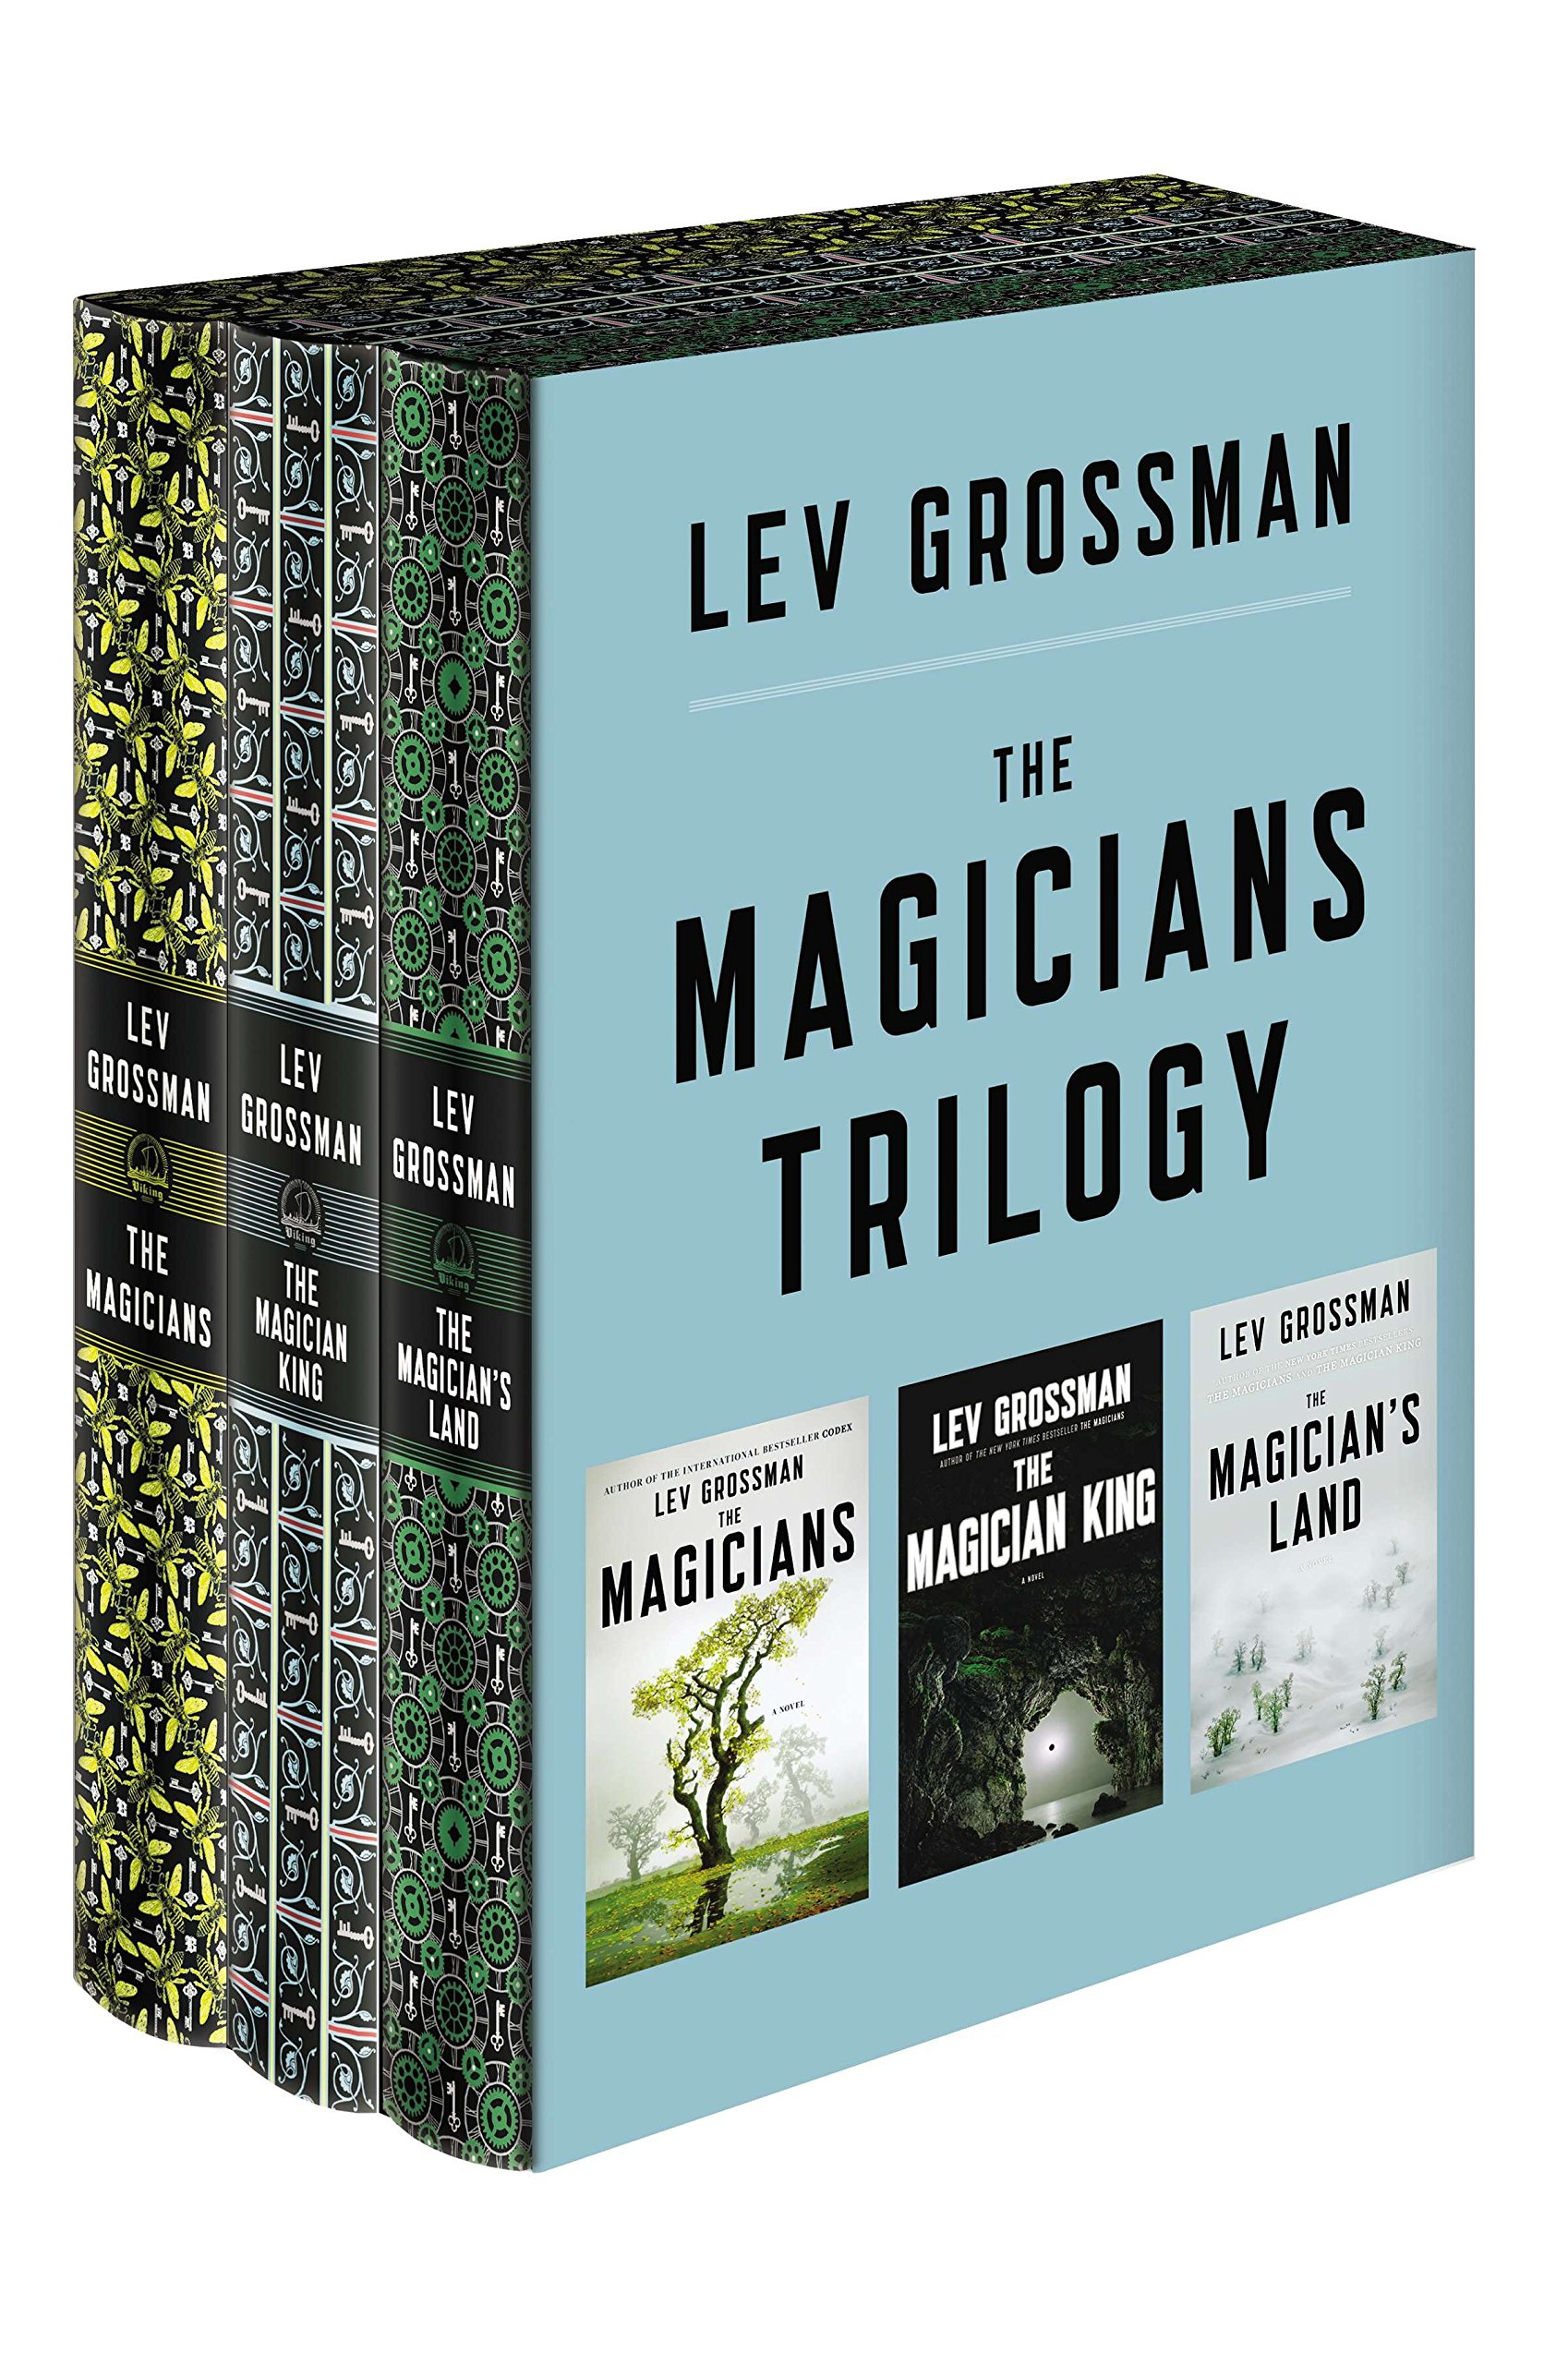 Read The Magicians Trilogy Boxed Set By Lev Grossman